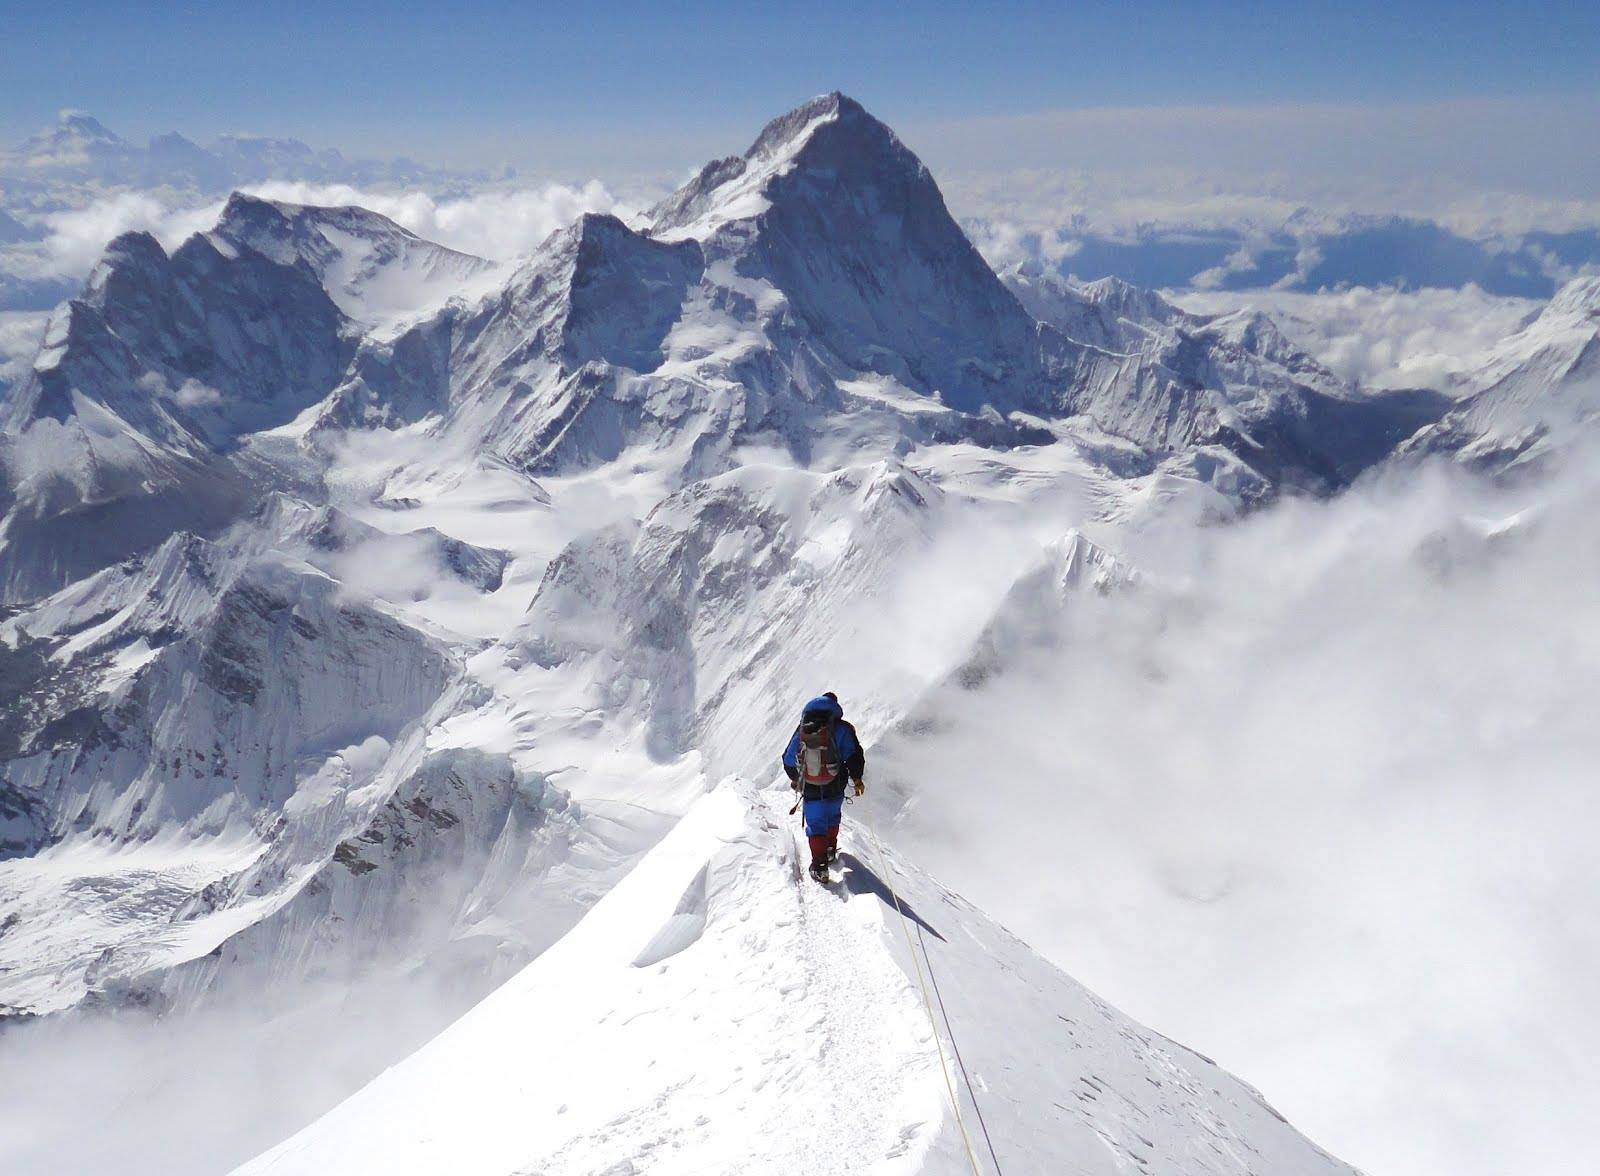 mountain climbing expeditions challenged - 1180×700